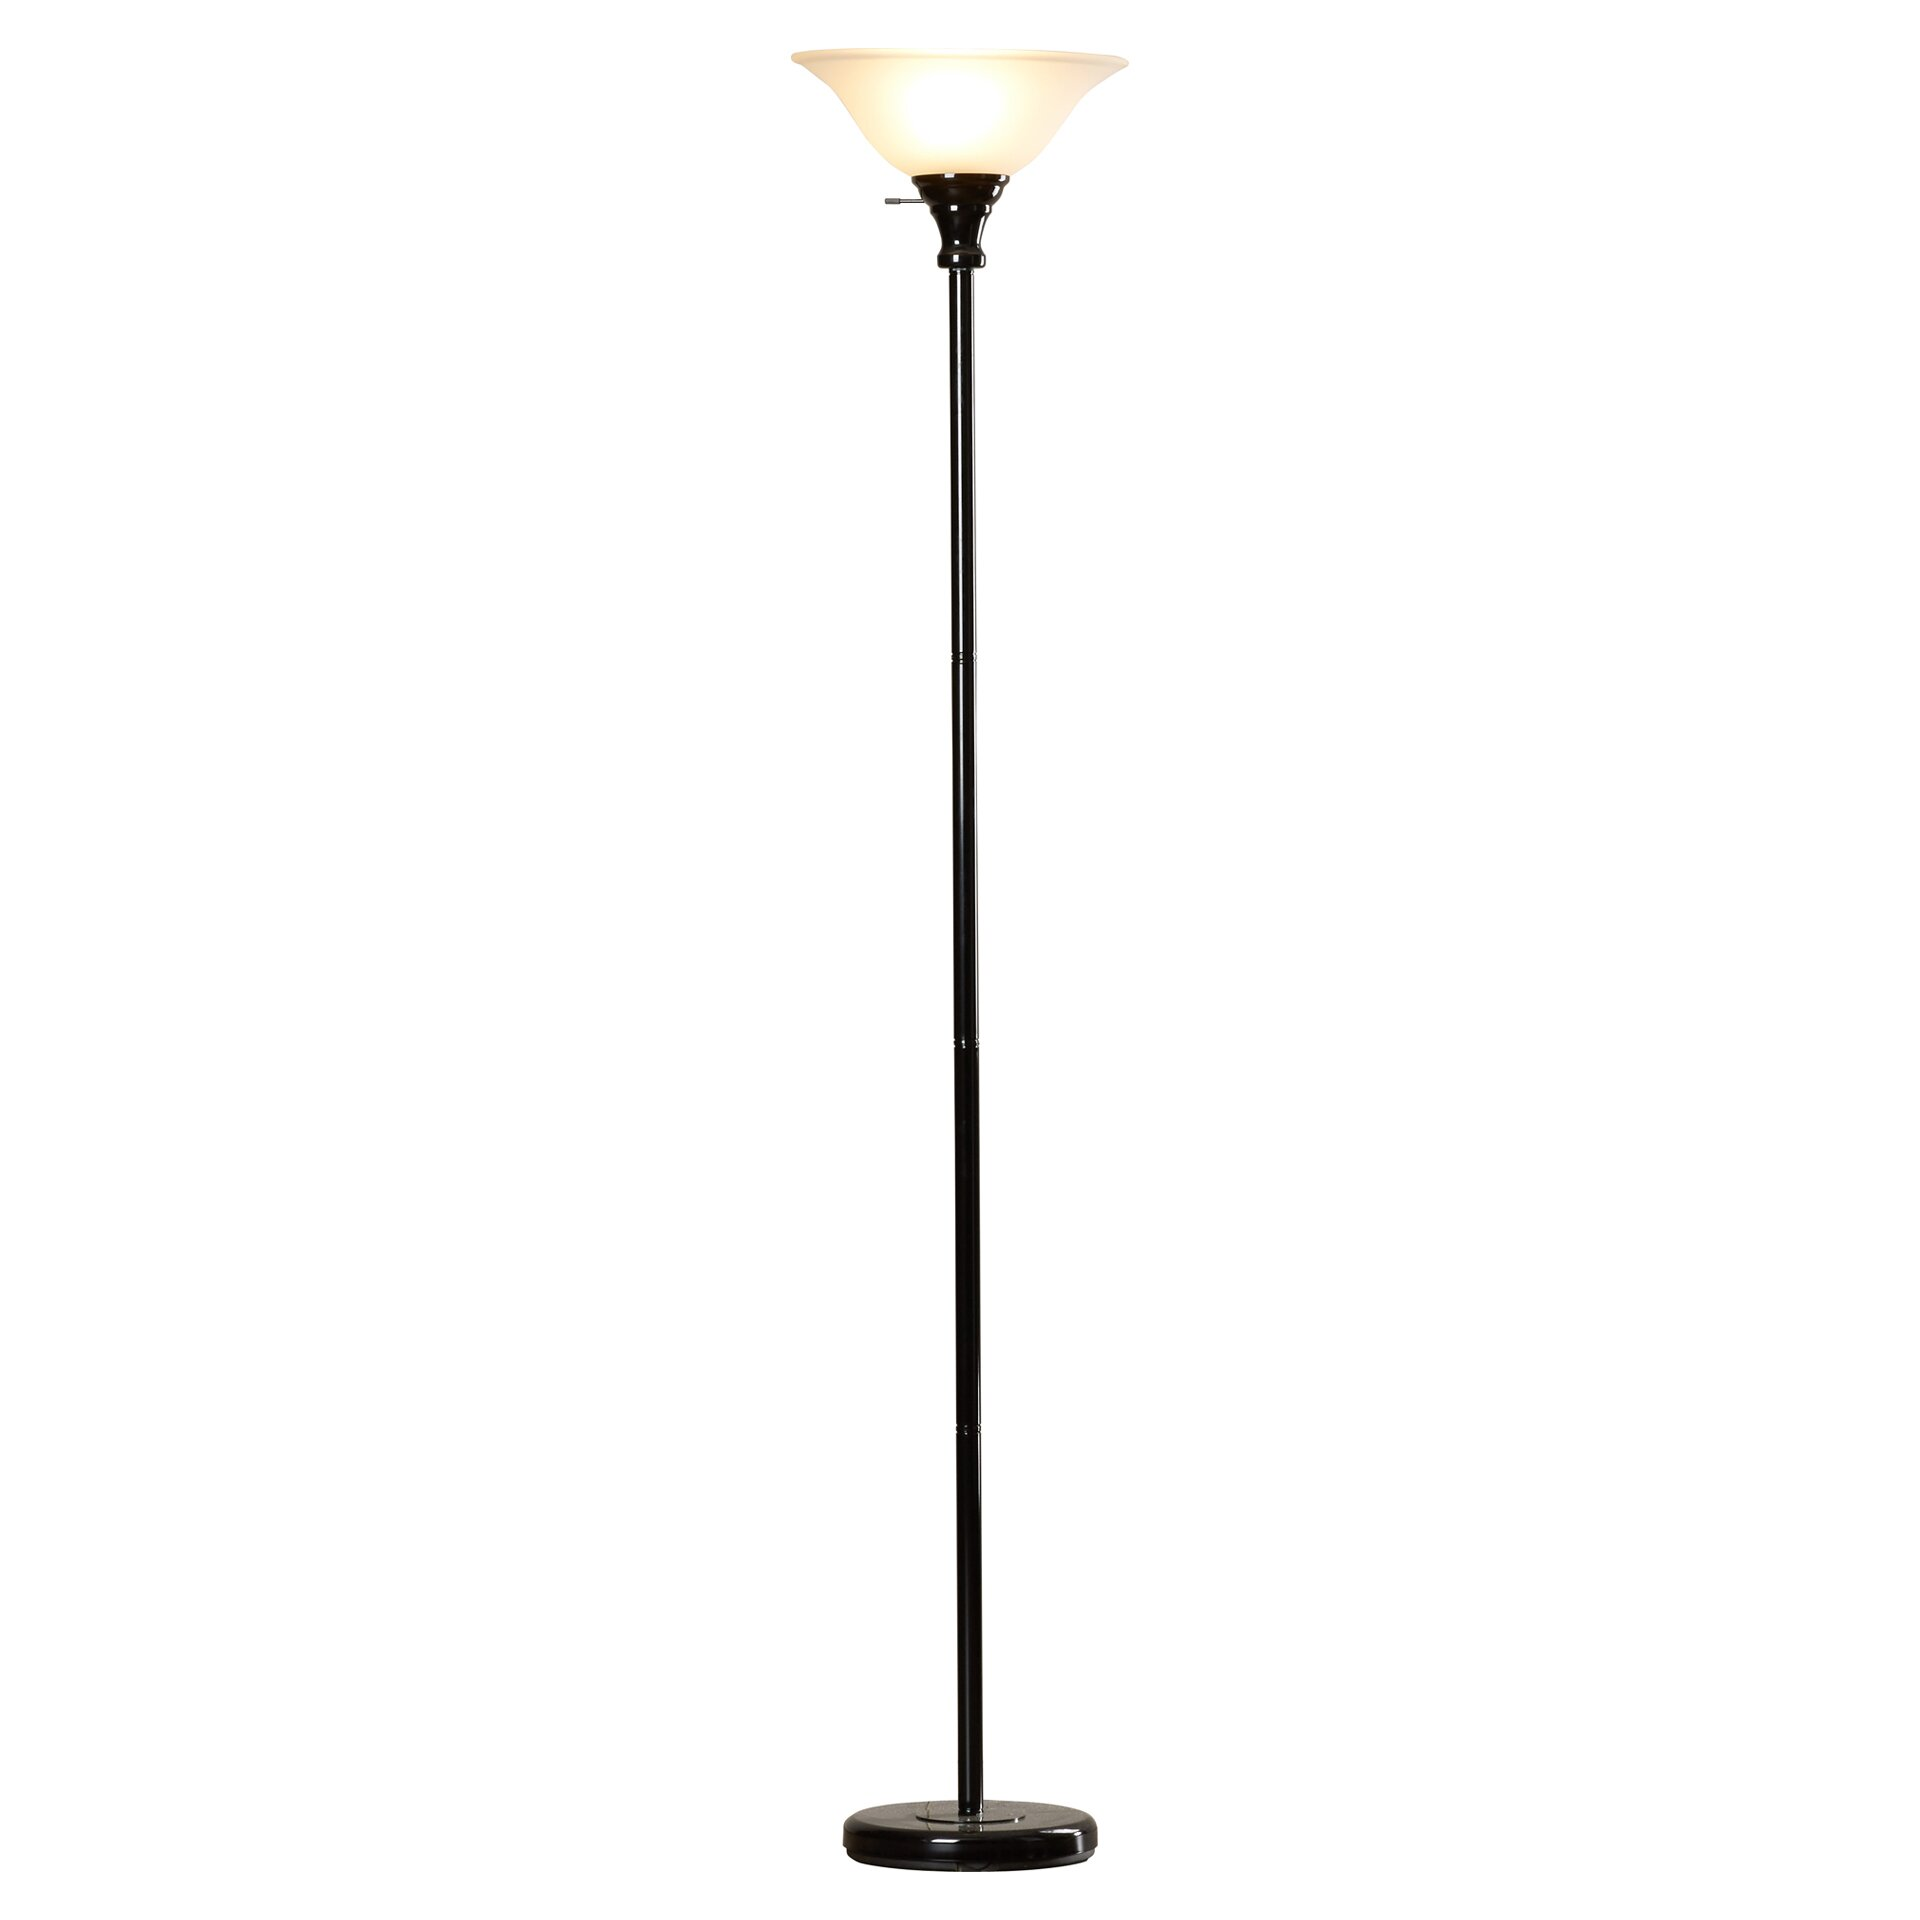 70 metal torchiere floor lamp with glass shade reviews wayfair. Black Bedroom Furniture Sets. Home Design Ideas